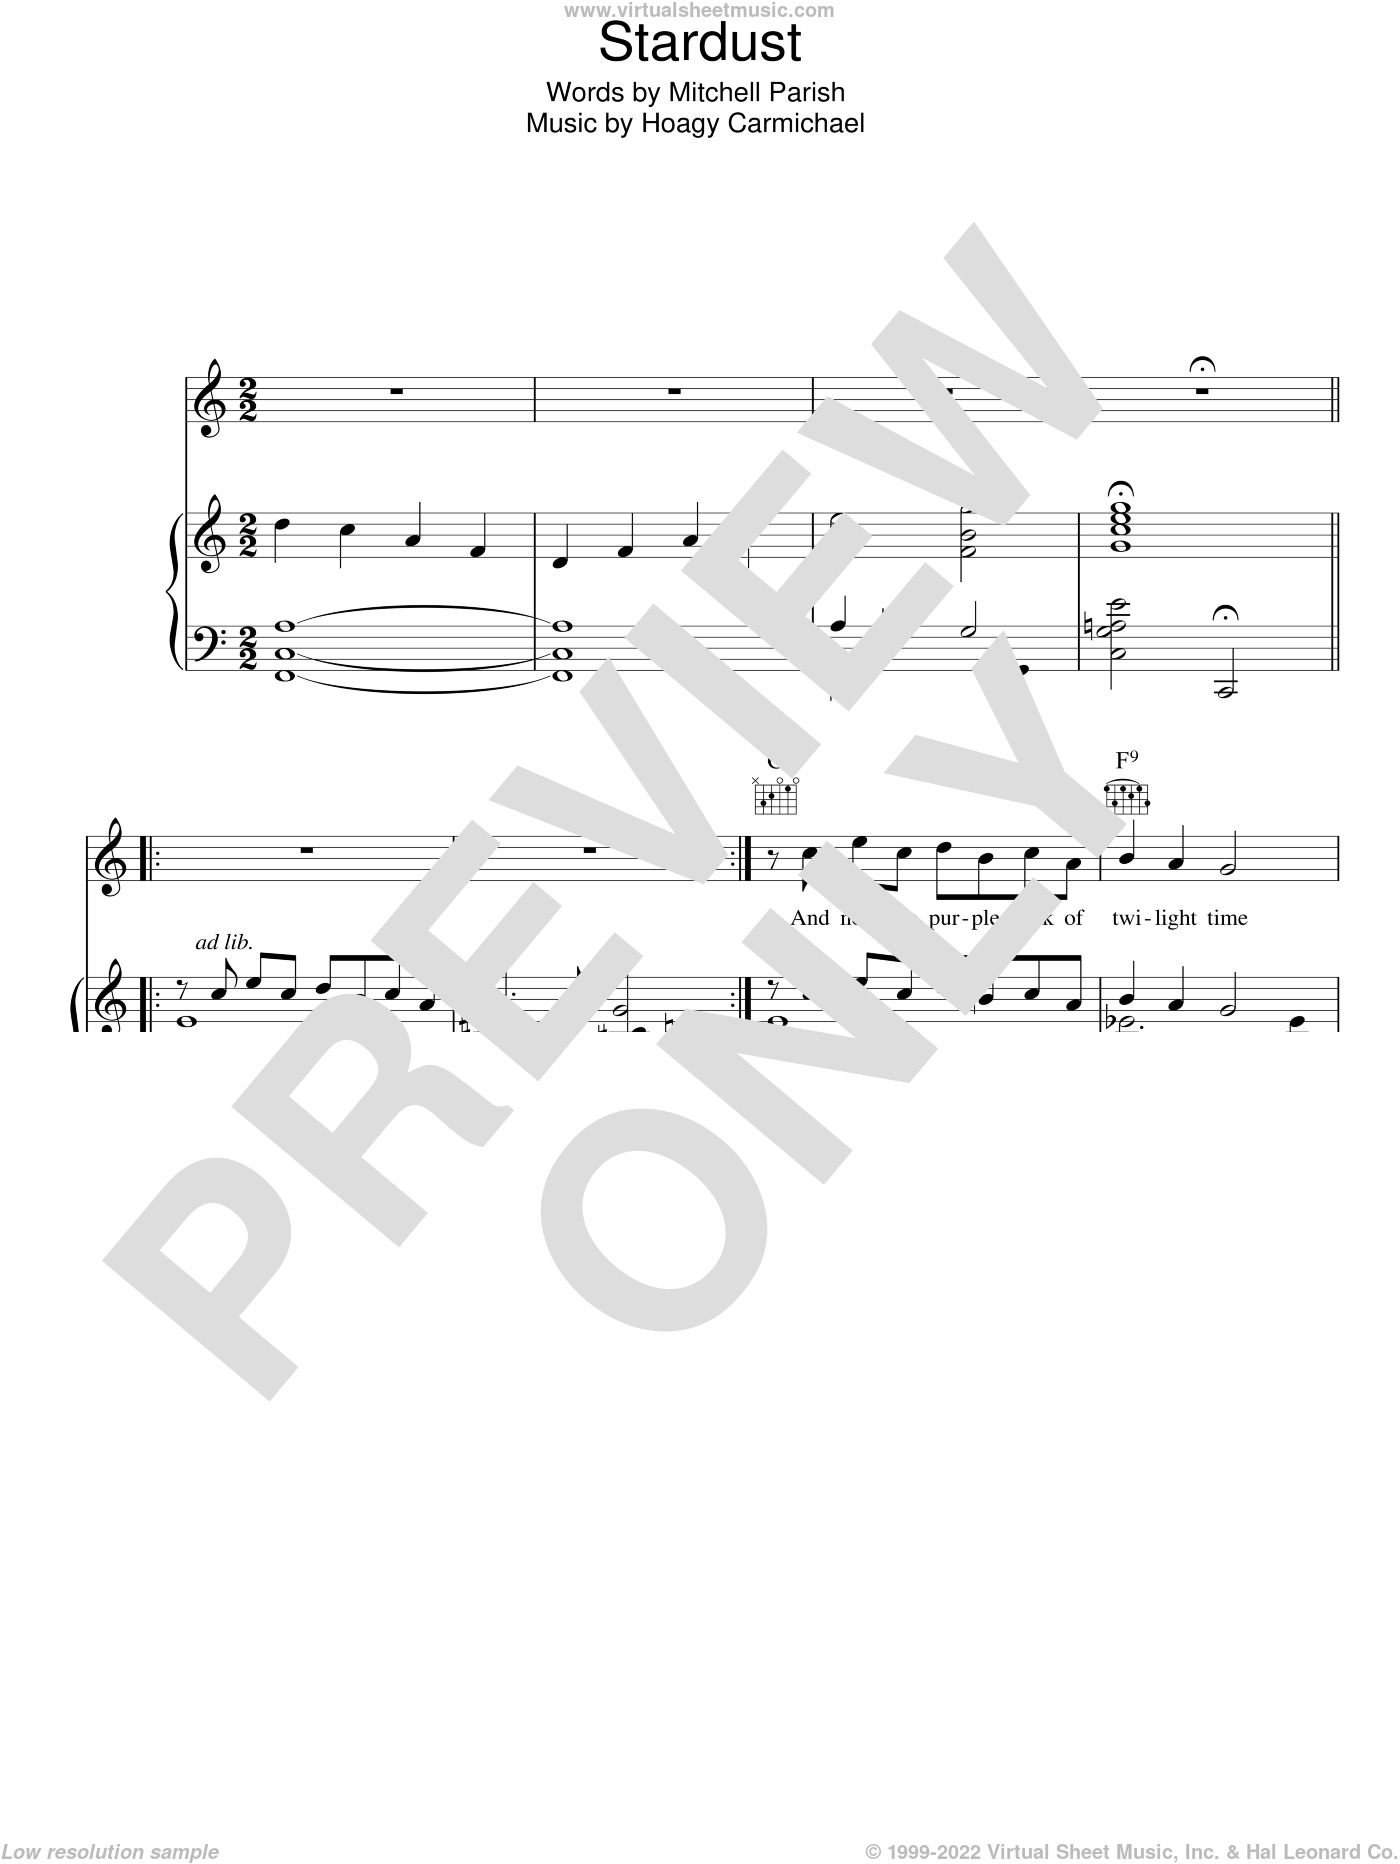 Stardust sheet music for voice, piano or guitar by Mitchell Parish